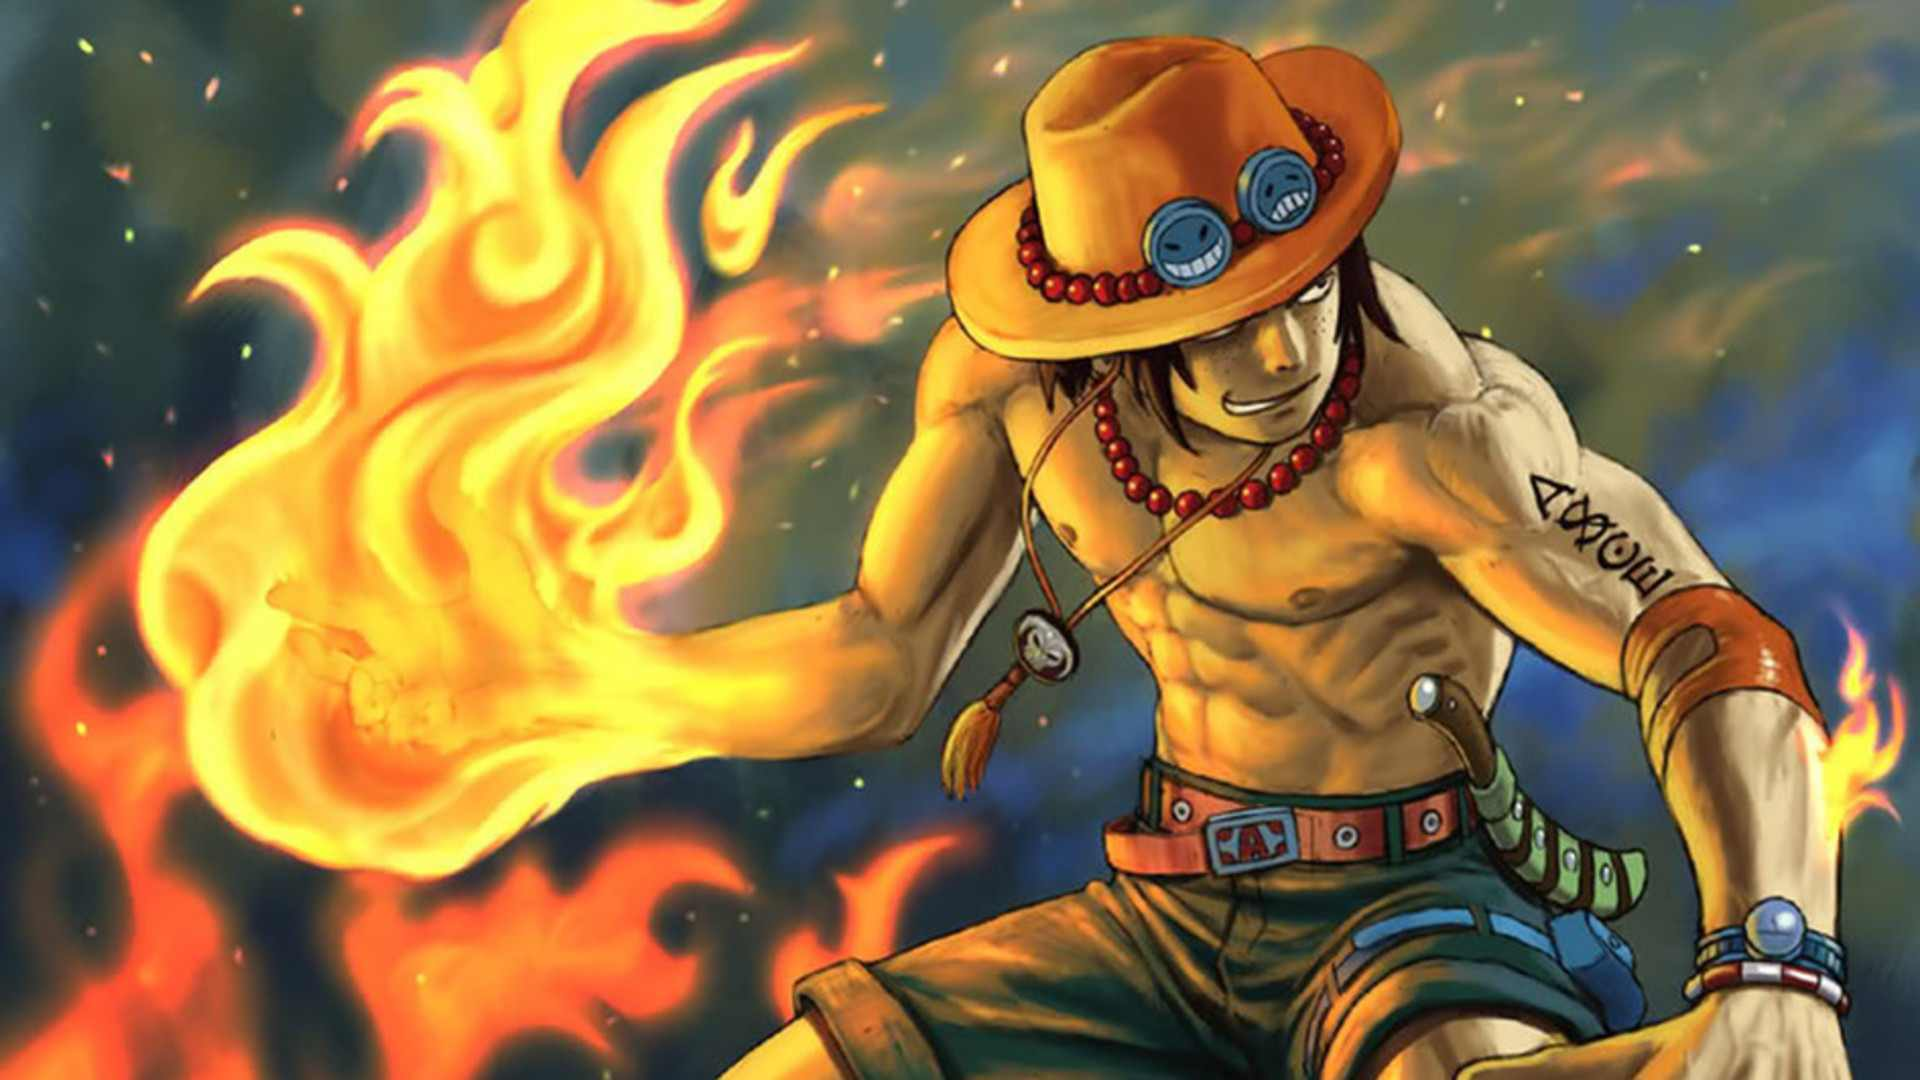 One Piece Luffy Gear Second HD Picture Wallpaper - HD Wallpapers ...